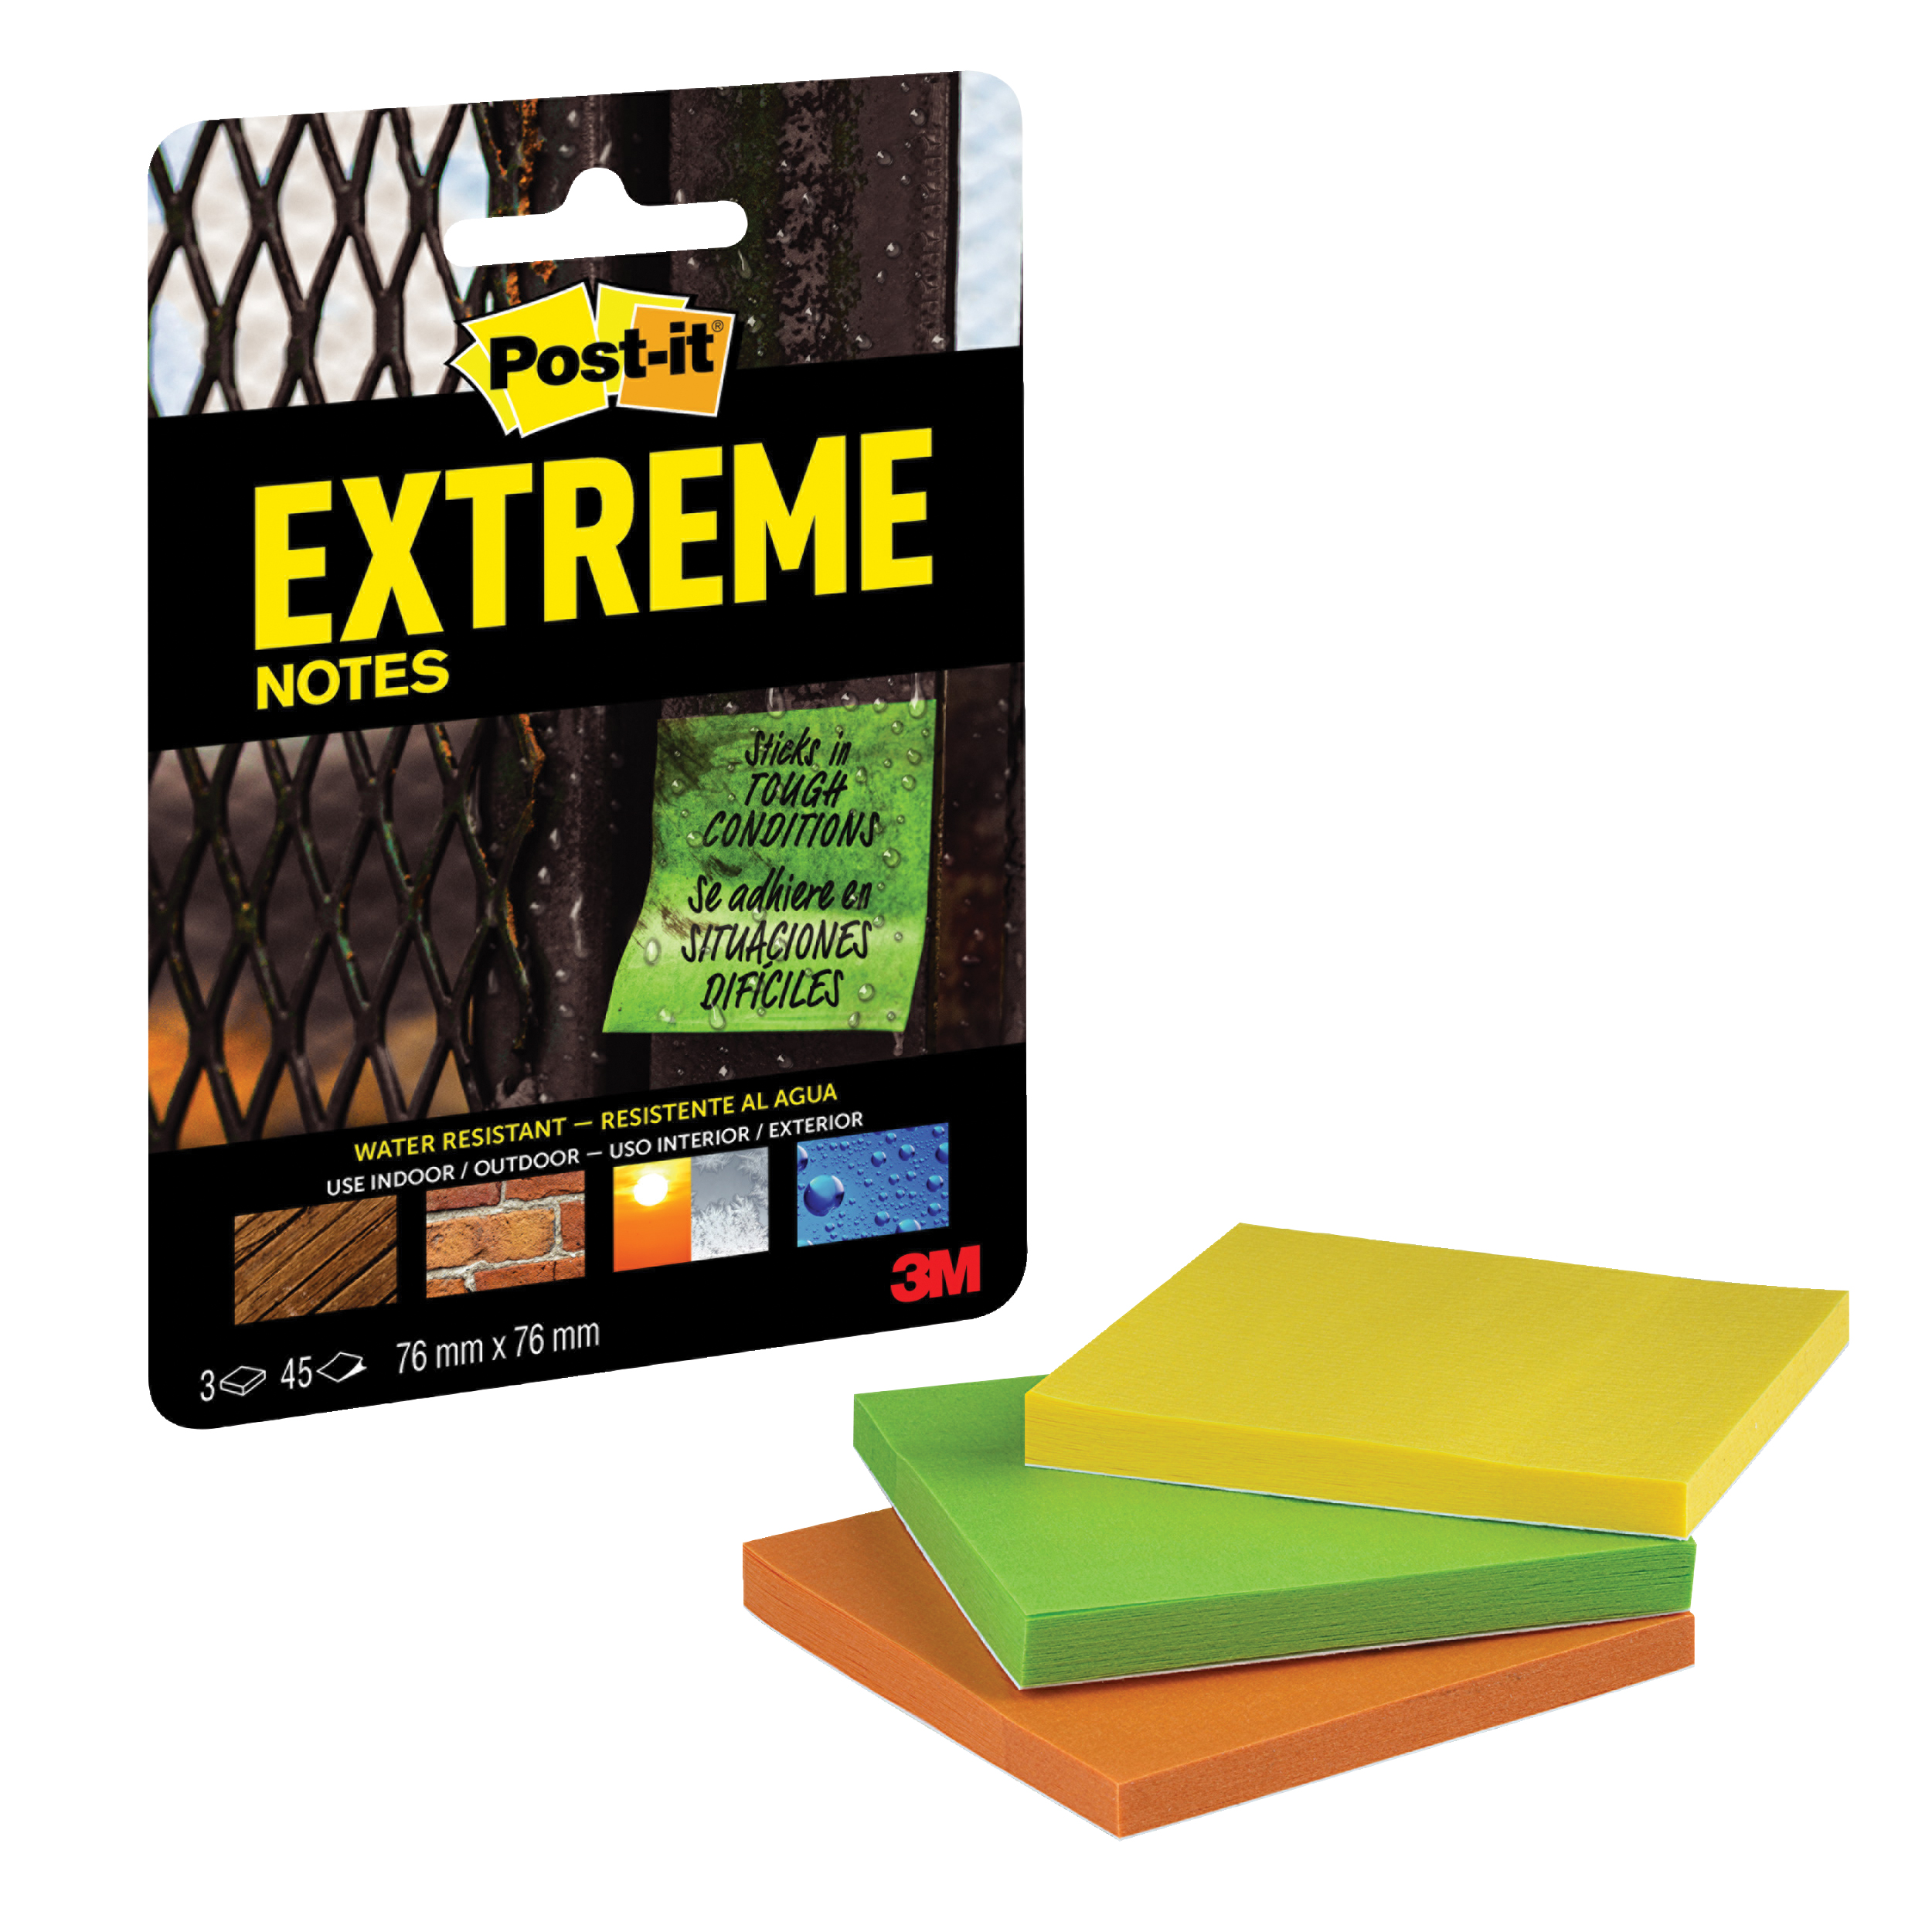 Self adhesive note paper Post-it Extreme Notes 76x76mm Assorted 3 Colours Ref EXT33M-3-UKSP Packs of 3 Pads x 45 Sheets